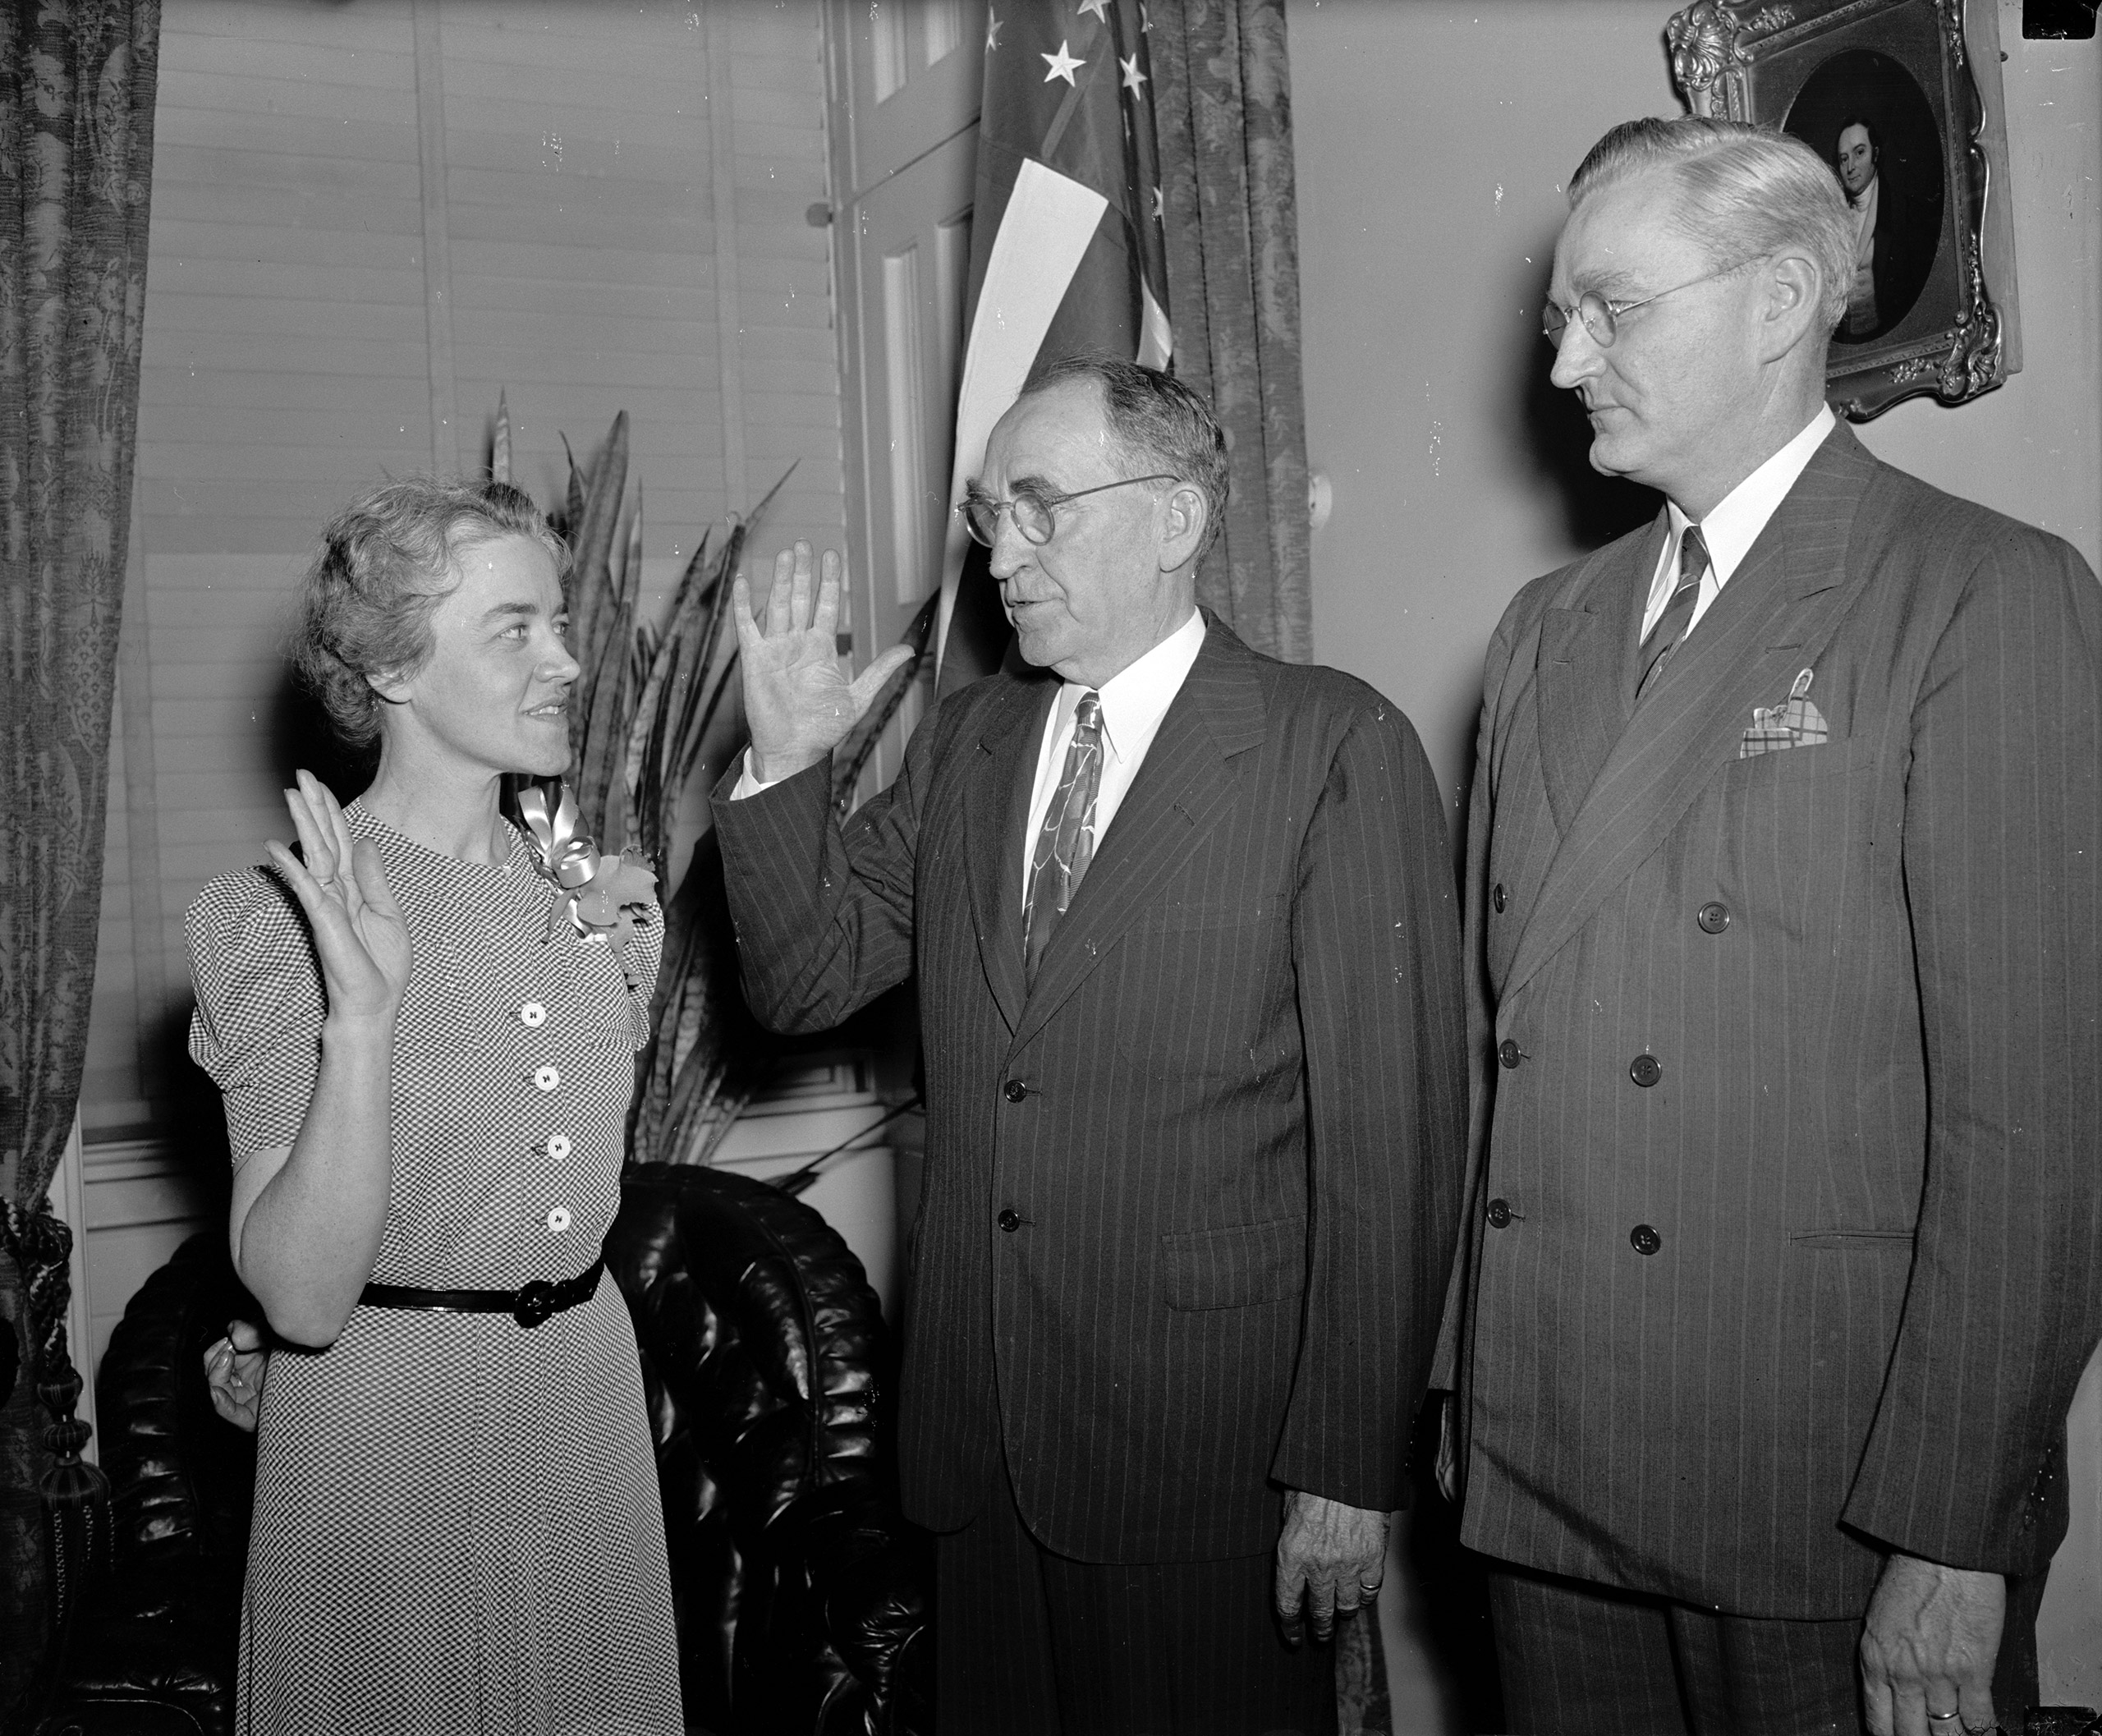 Margaret Chase Smith, wife of the late Rep. Clyde Smith, Maine Republican, being sworn in, June 10, 1940.